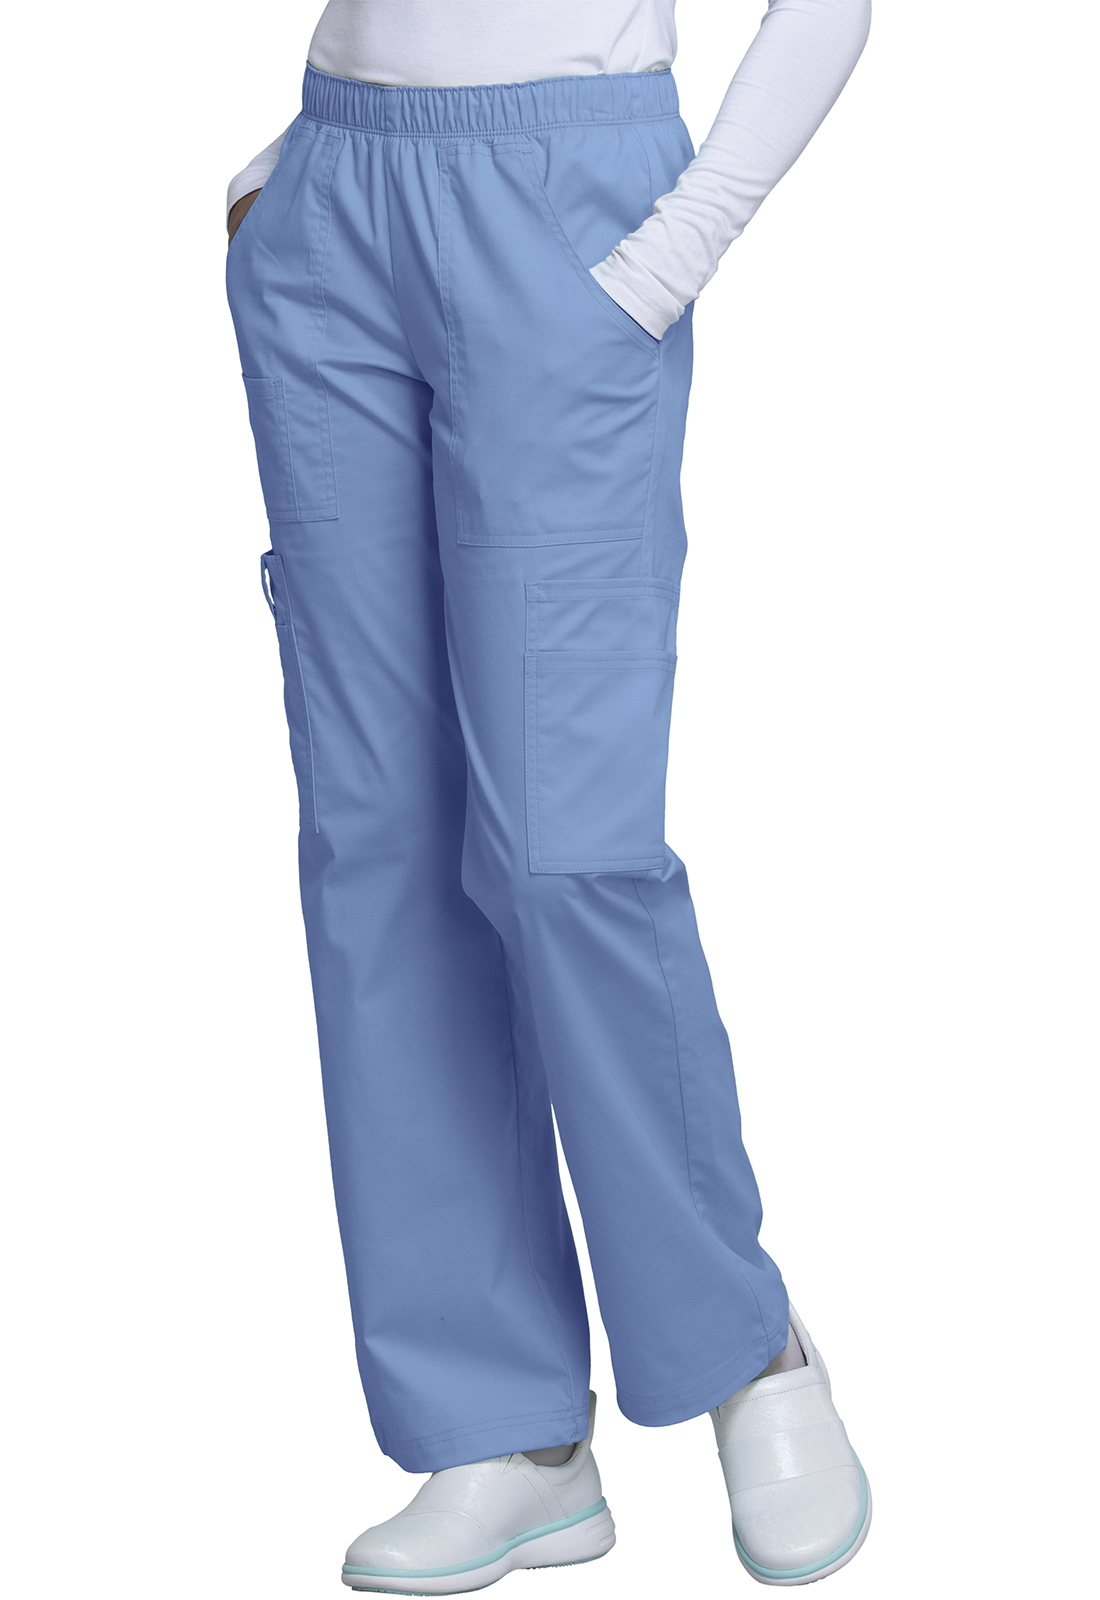 357c628f1c4 WW Core Stretch Mid Rise Pull-On Pant Cargo Pant in Ciel 4005-CIEW ...